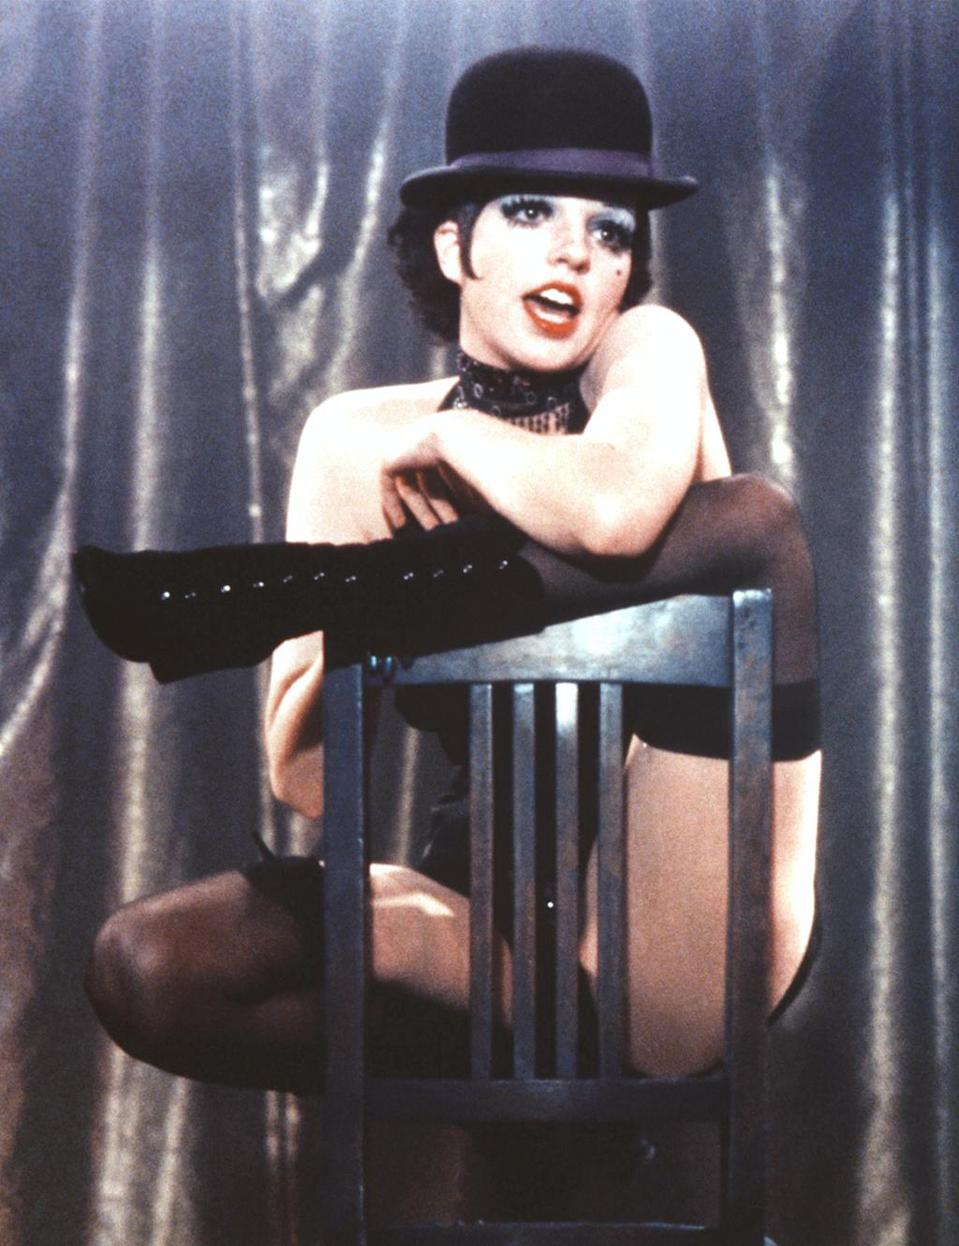 """<p>Bob Fosse's Nazi Germany-set musical is the only film on this list not to win Best Picture (it lost to """"The Godfather,"""" which you'll never hear anyone complain about). It did take home Best Director, Best Actress (Liza Minelli), and Best Supporting Actor (Joel Grey) awards. (Photo: Everett) </p>"""